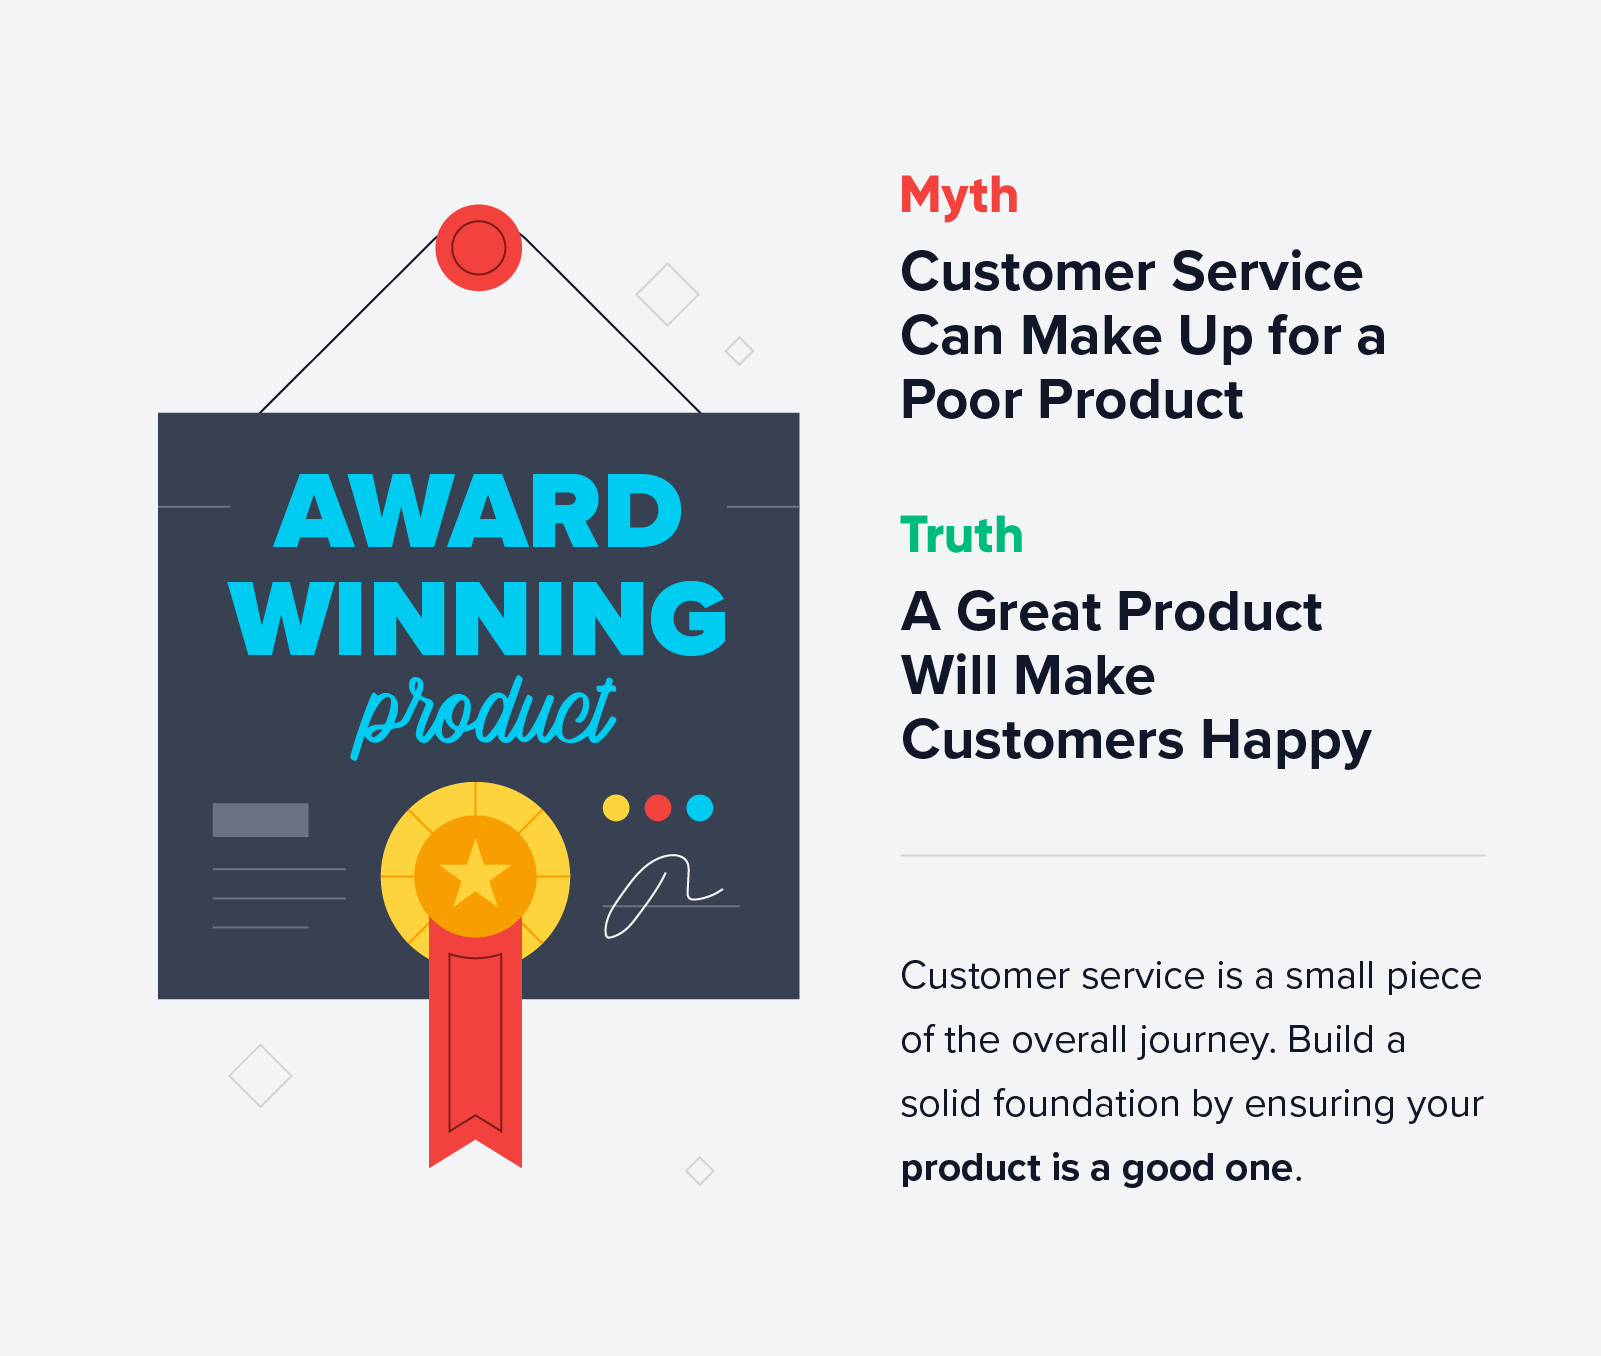 a great product will make customers happy